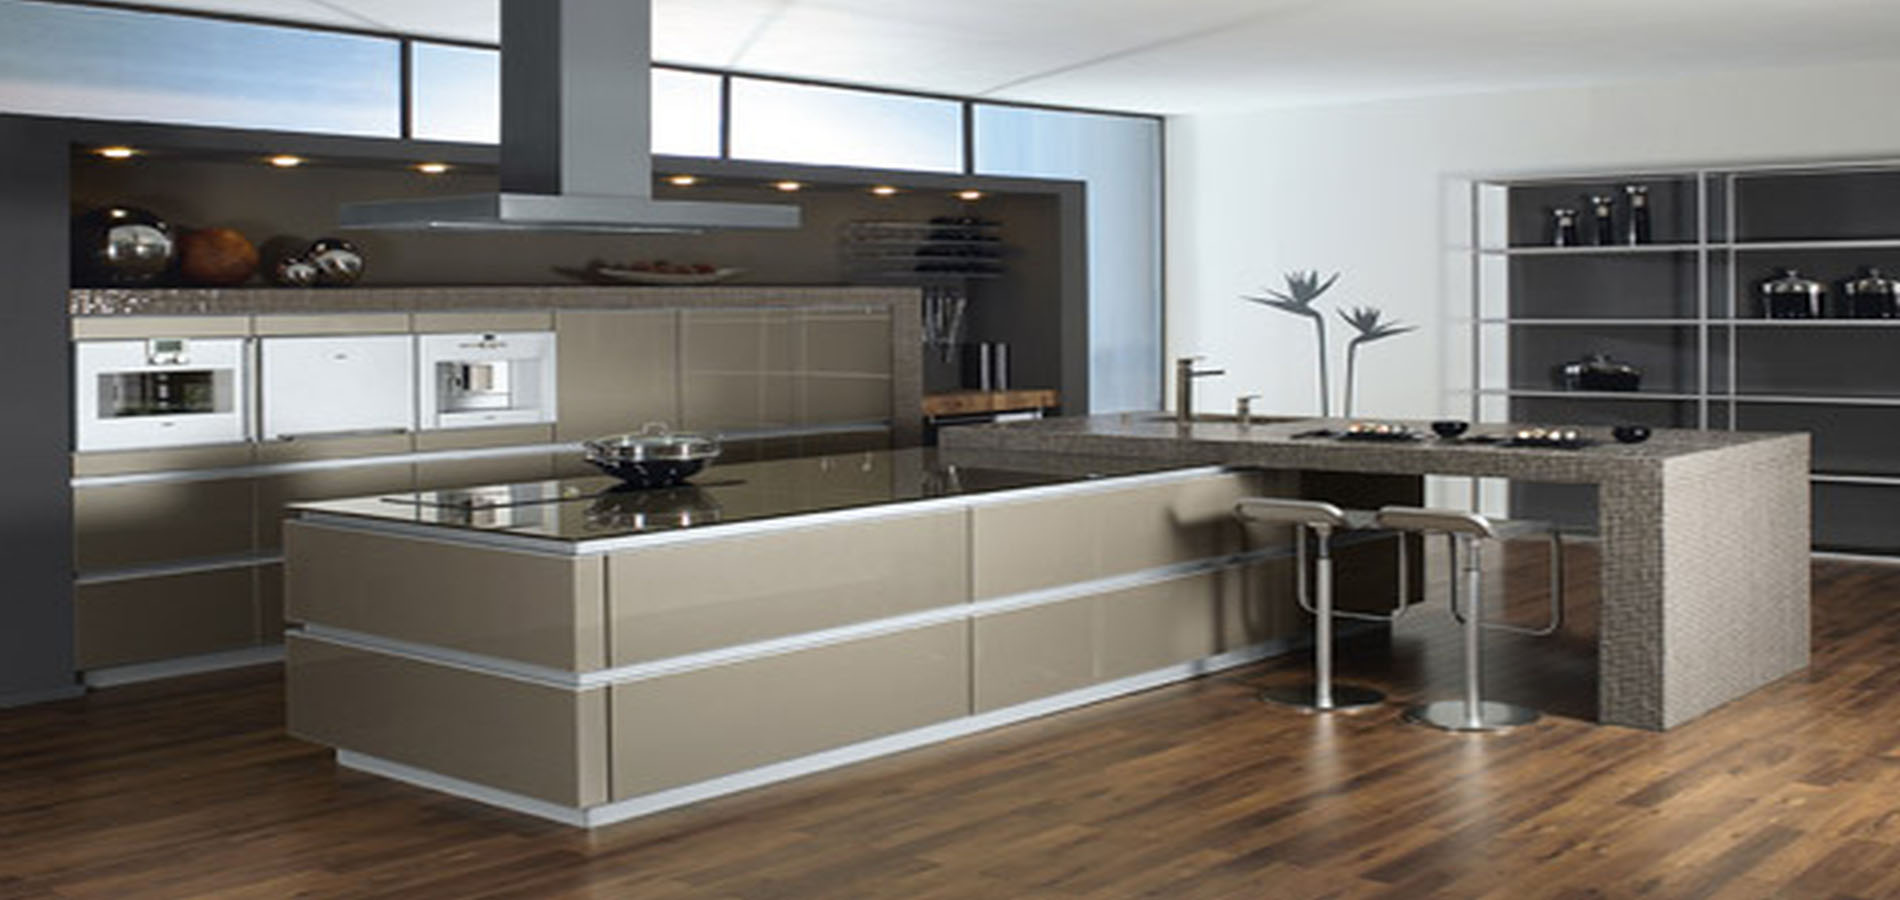 Best Kitchen Designs In The World kitchen cabinet designs malaysia | best kitchen cabinetdesign